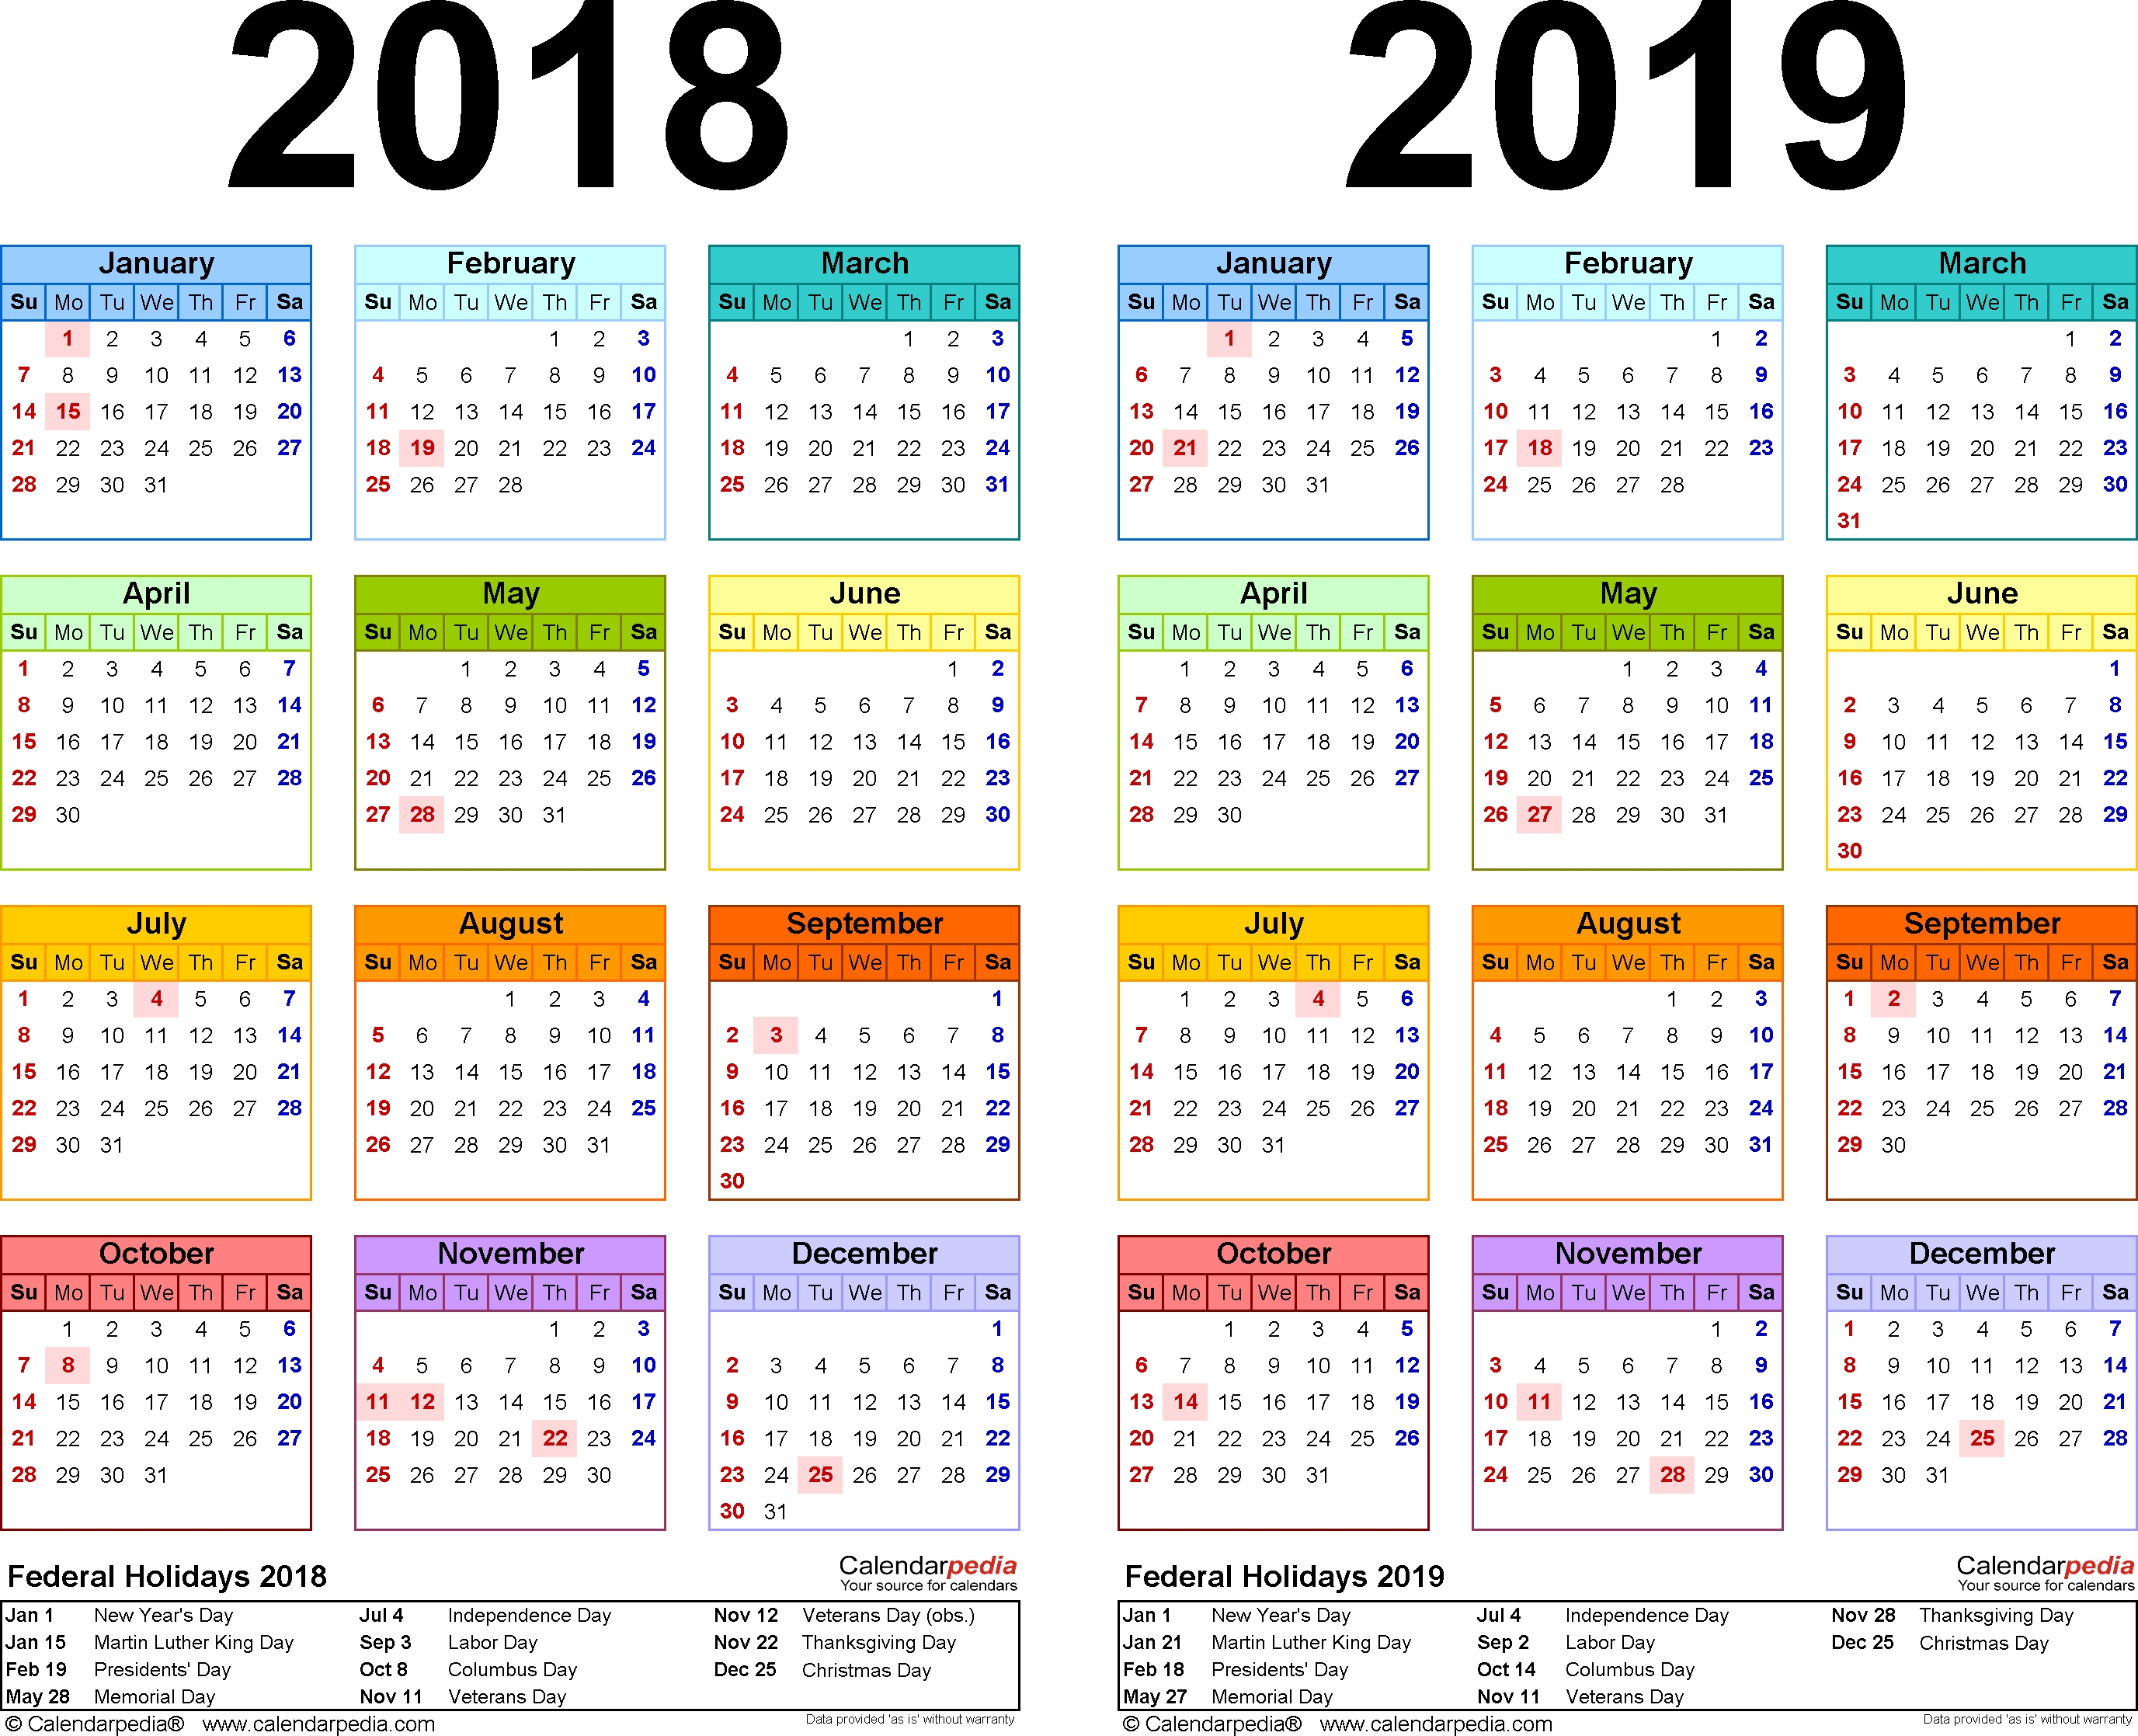 2018-2019 Calendar - Free Printable Two-Year Excel Calendars intended for 2020 Printable Liturgical Calendar Free